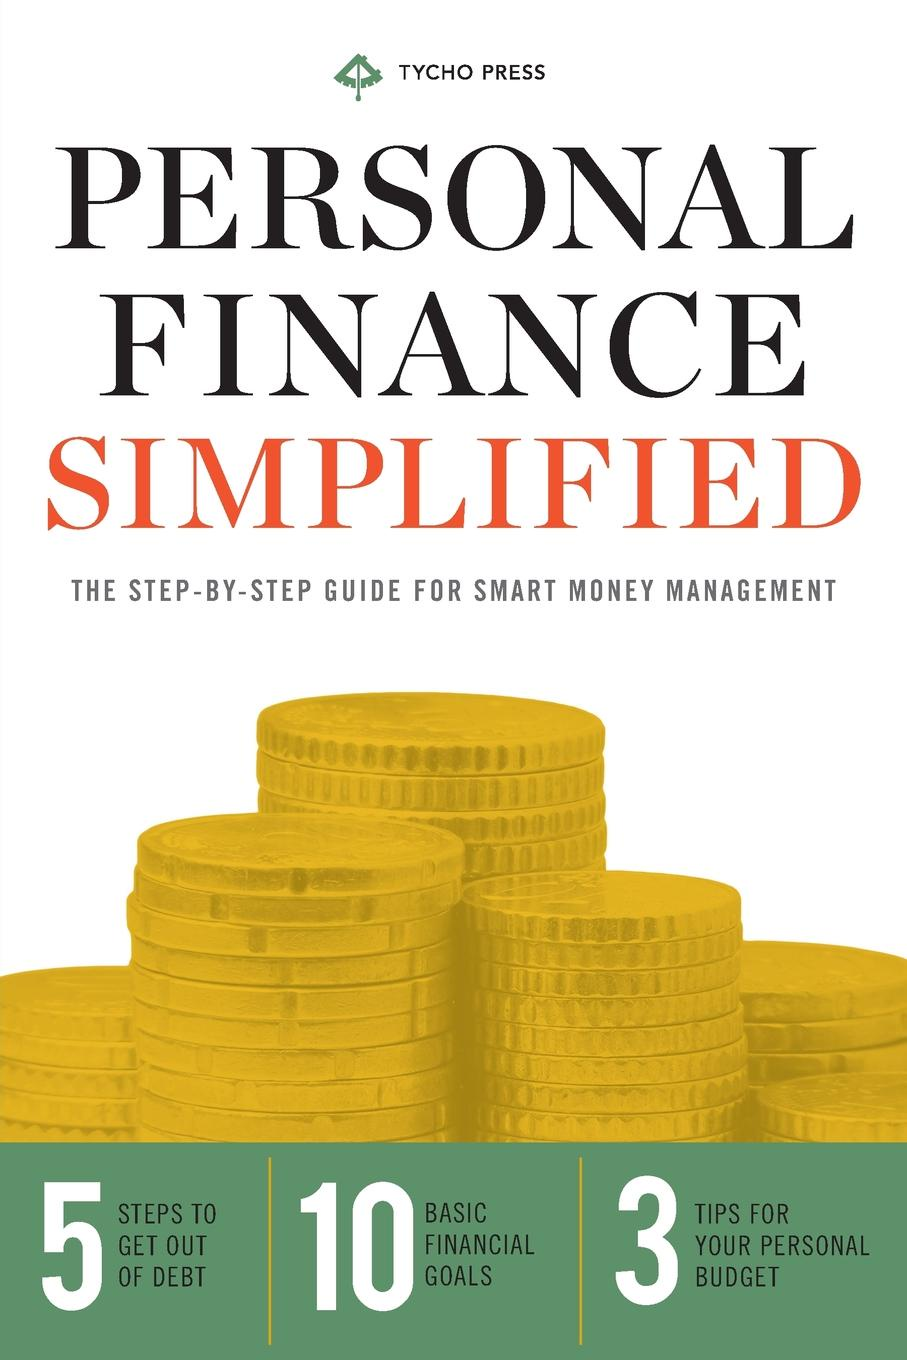 Tycho Press Personal Finance Simplified. The Step-By-Step Guide for Smart Money Management stanley kershman j put your debt on a diet a step by step guide to financial fitness